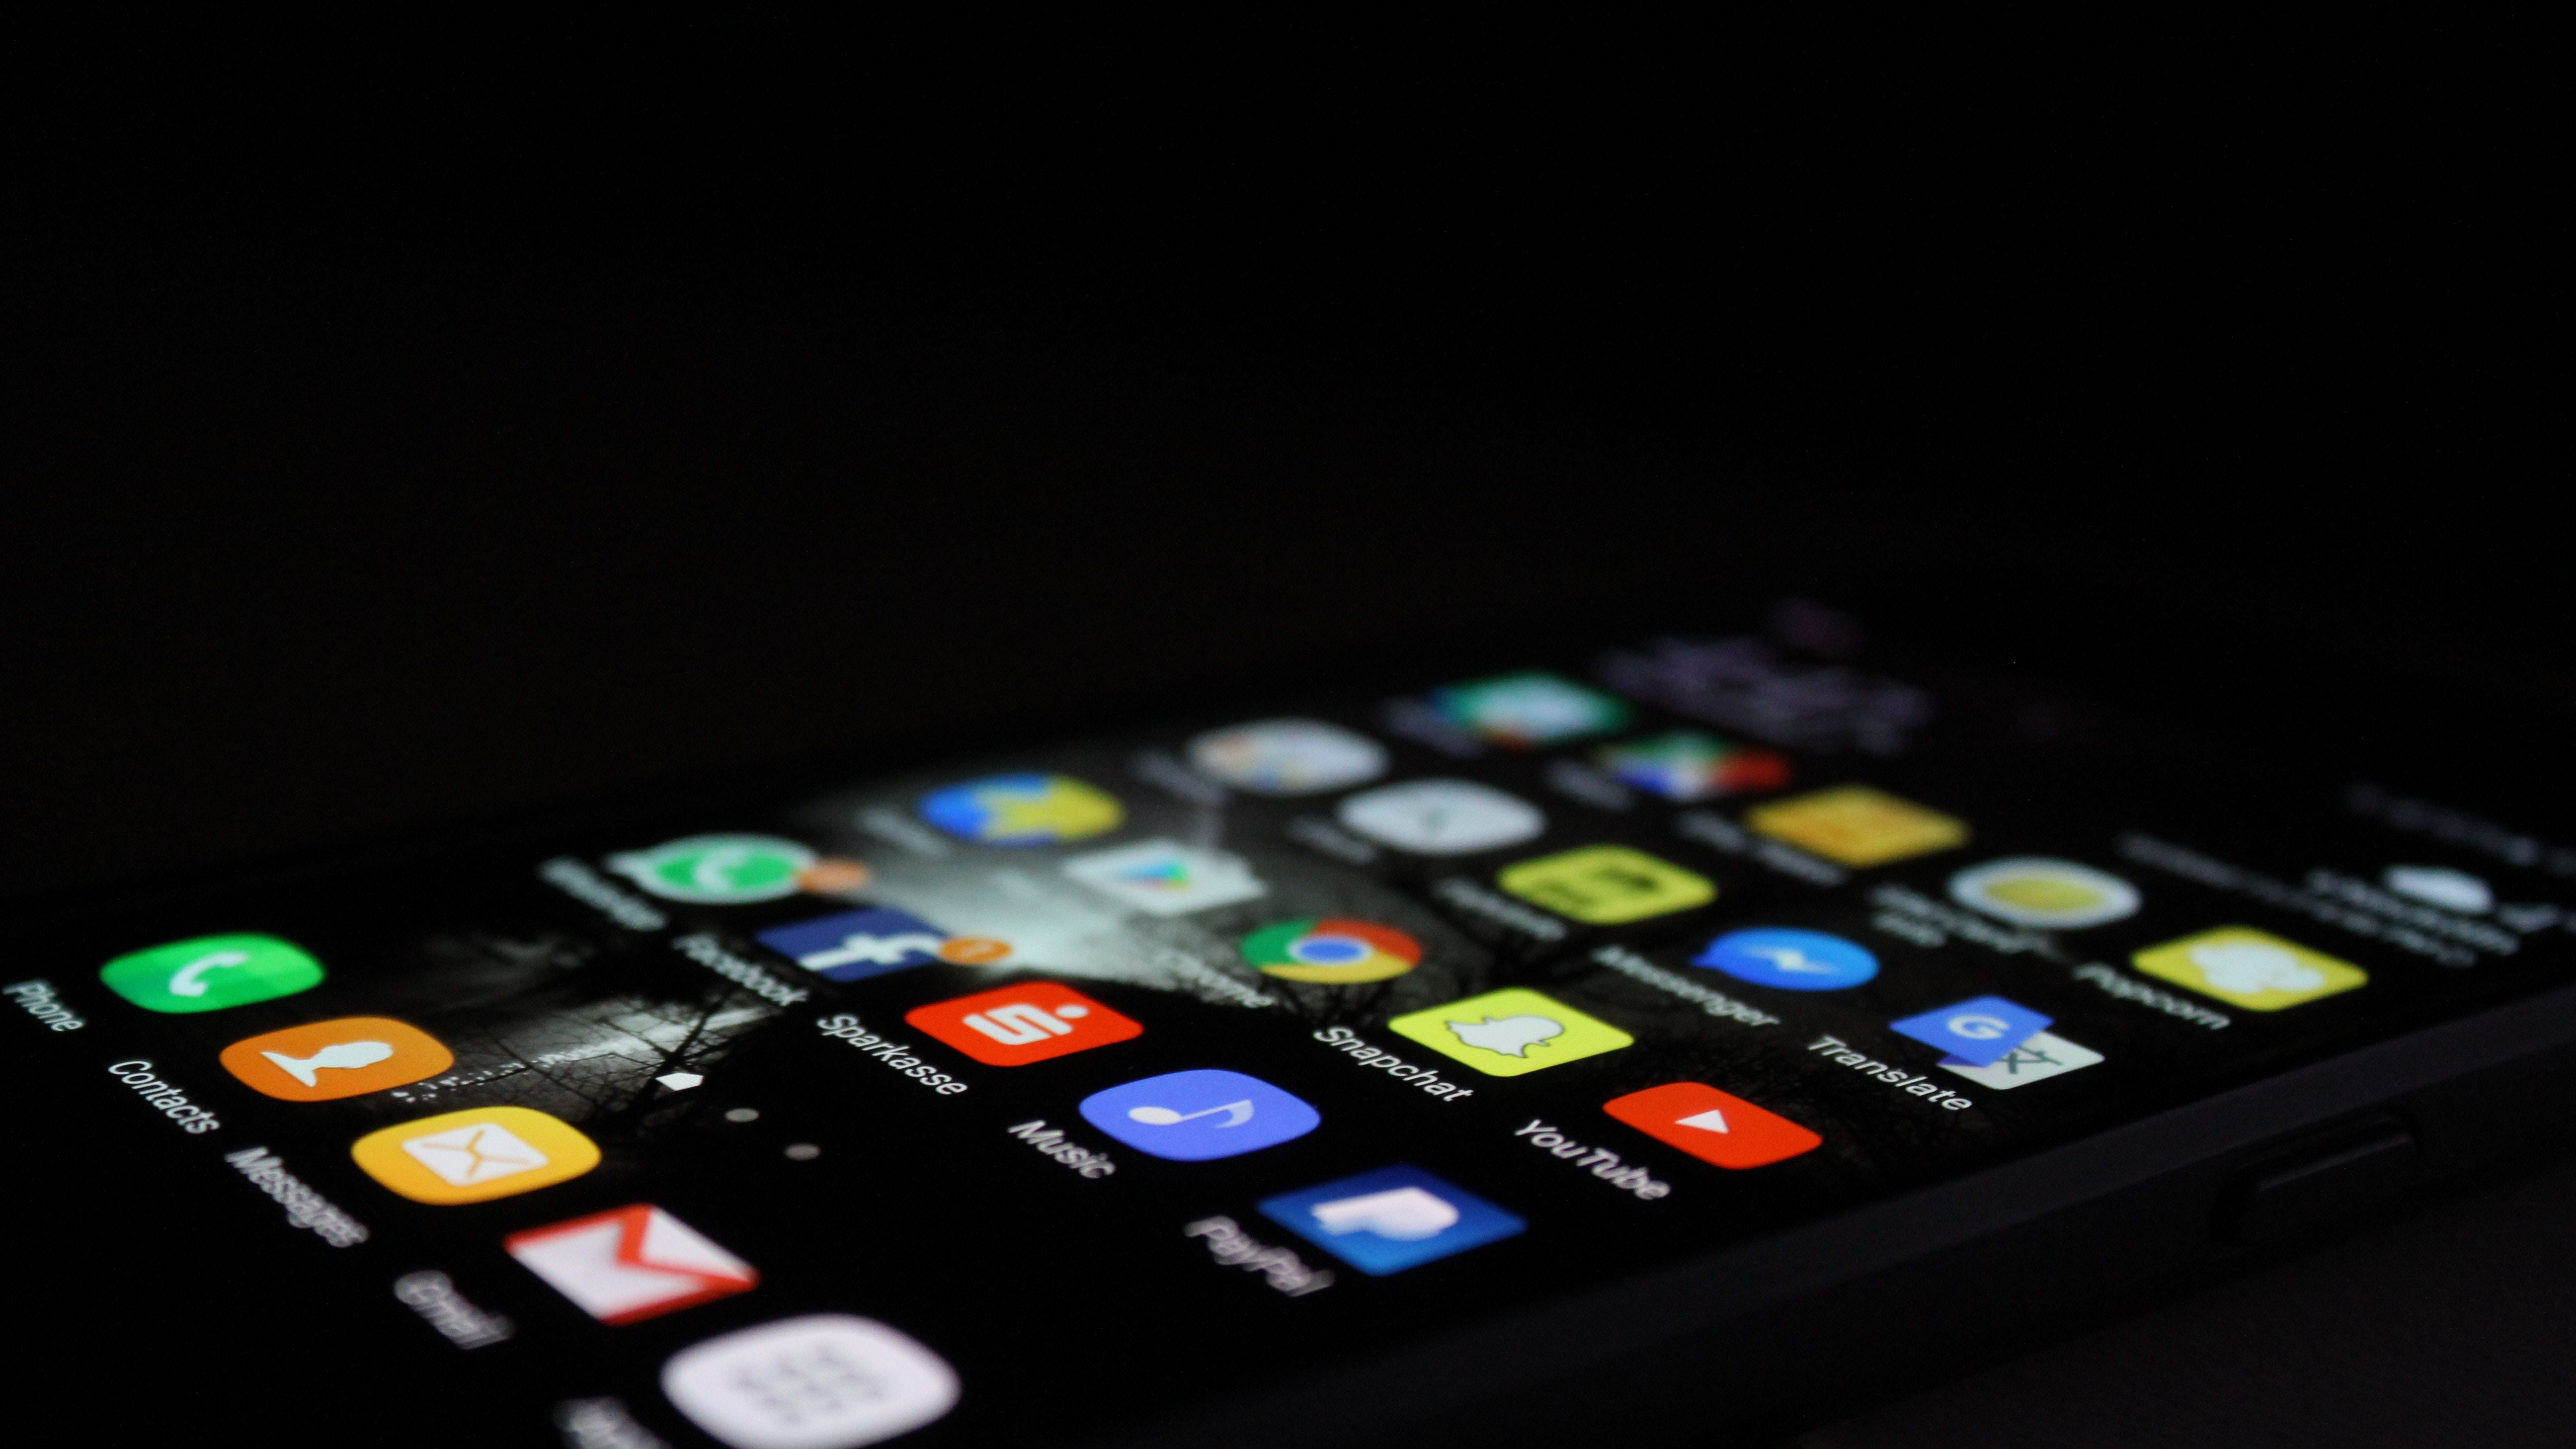 The Most Popular Apps Since 2012 [Infographic]